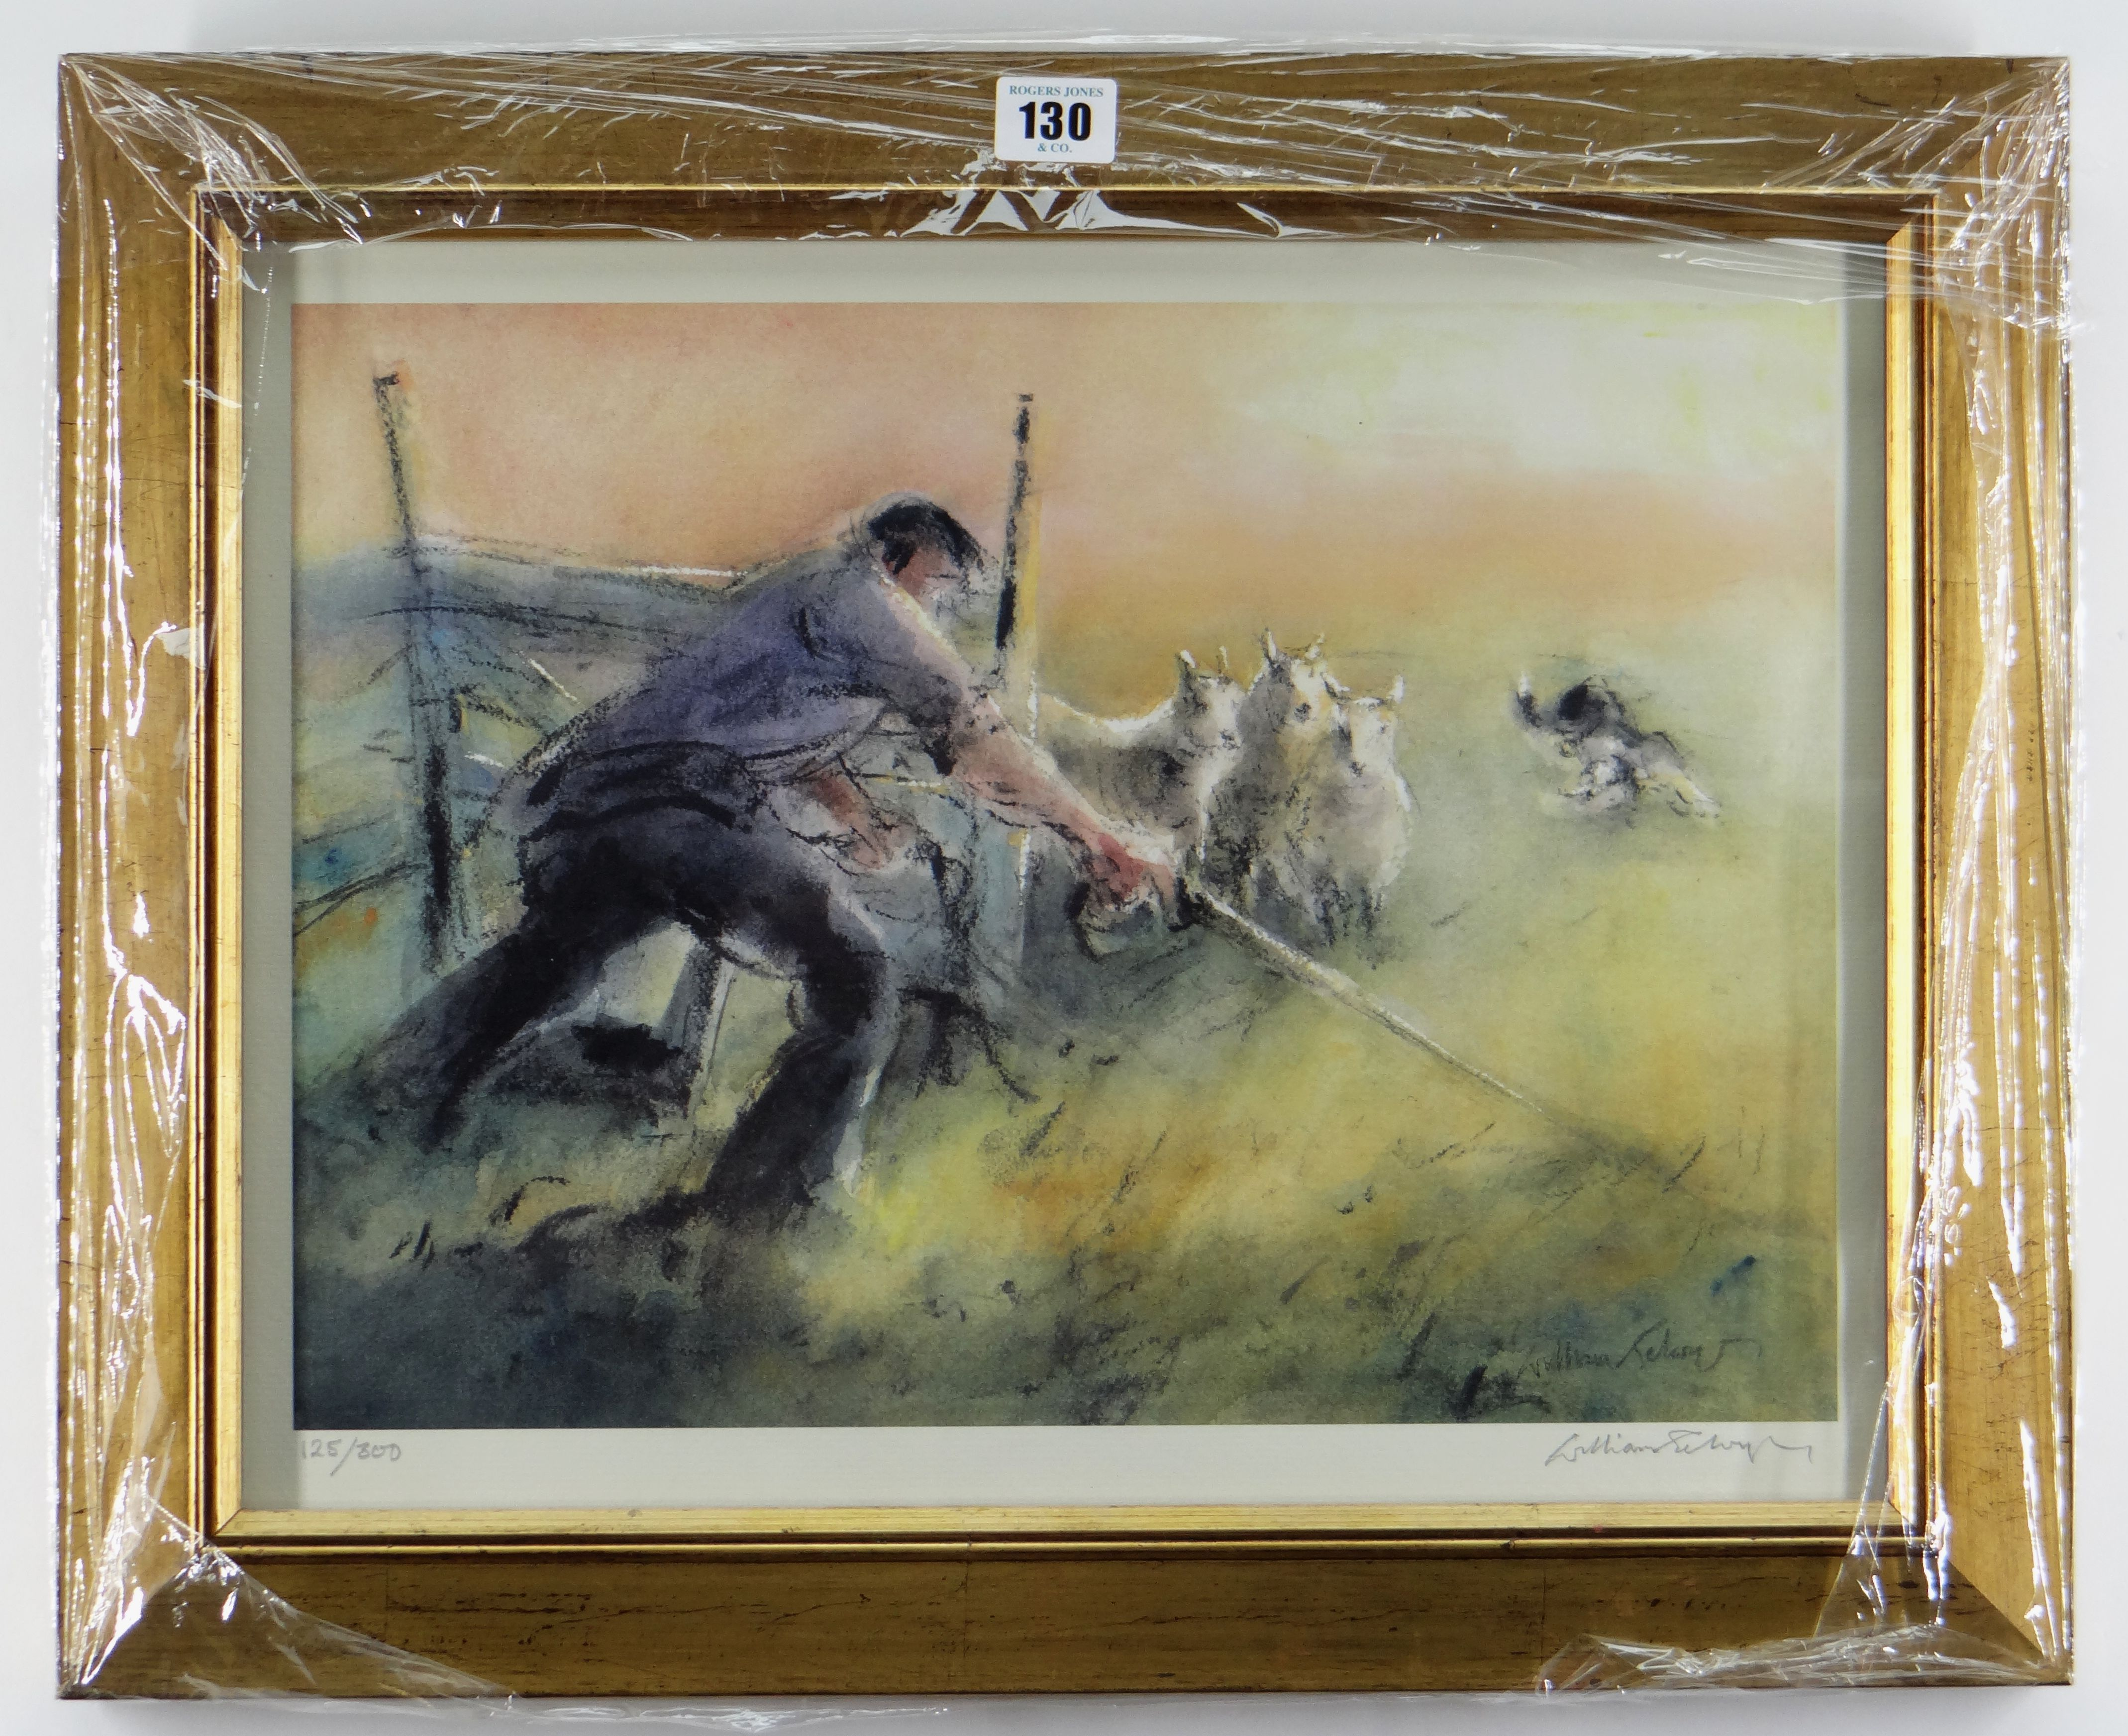 WILLIAM SELWYN limited edition (125/300) colour print - shepherd, signed fully in pencil, 34 x - Image 2 of 2